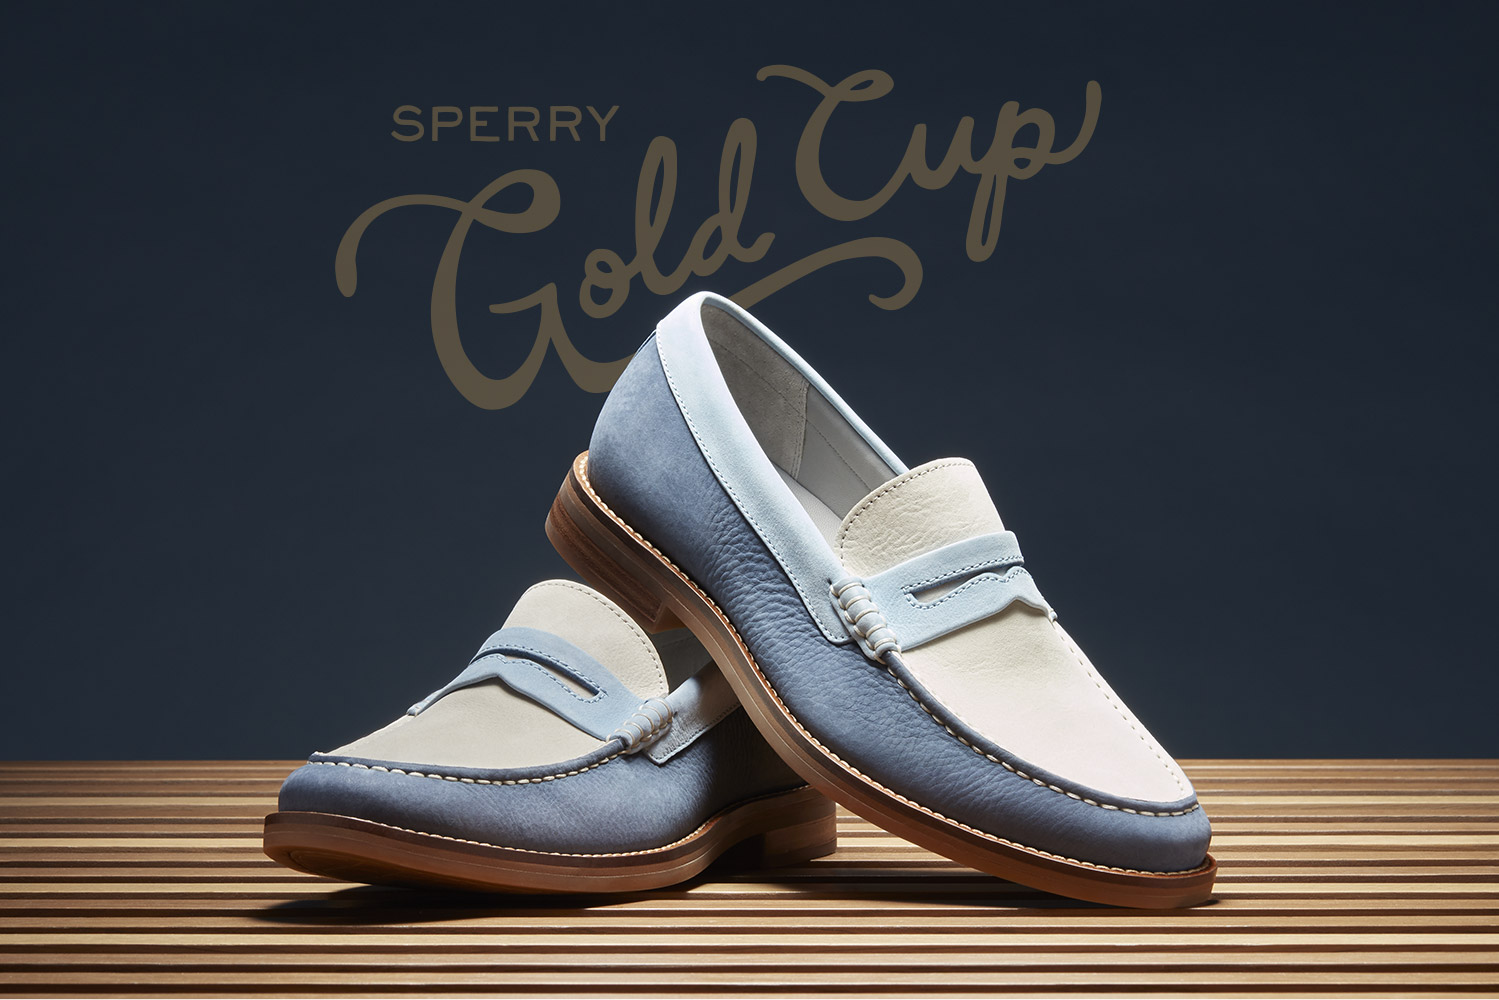 Tri-Toned Blue Leather Gold Cup loafers on a wooden table with a dark blue background